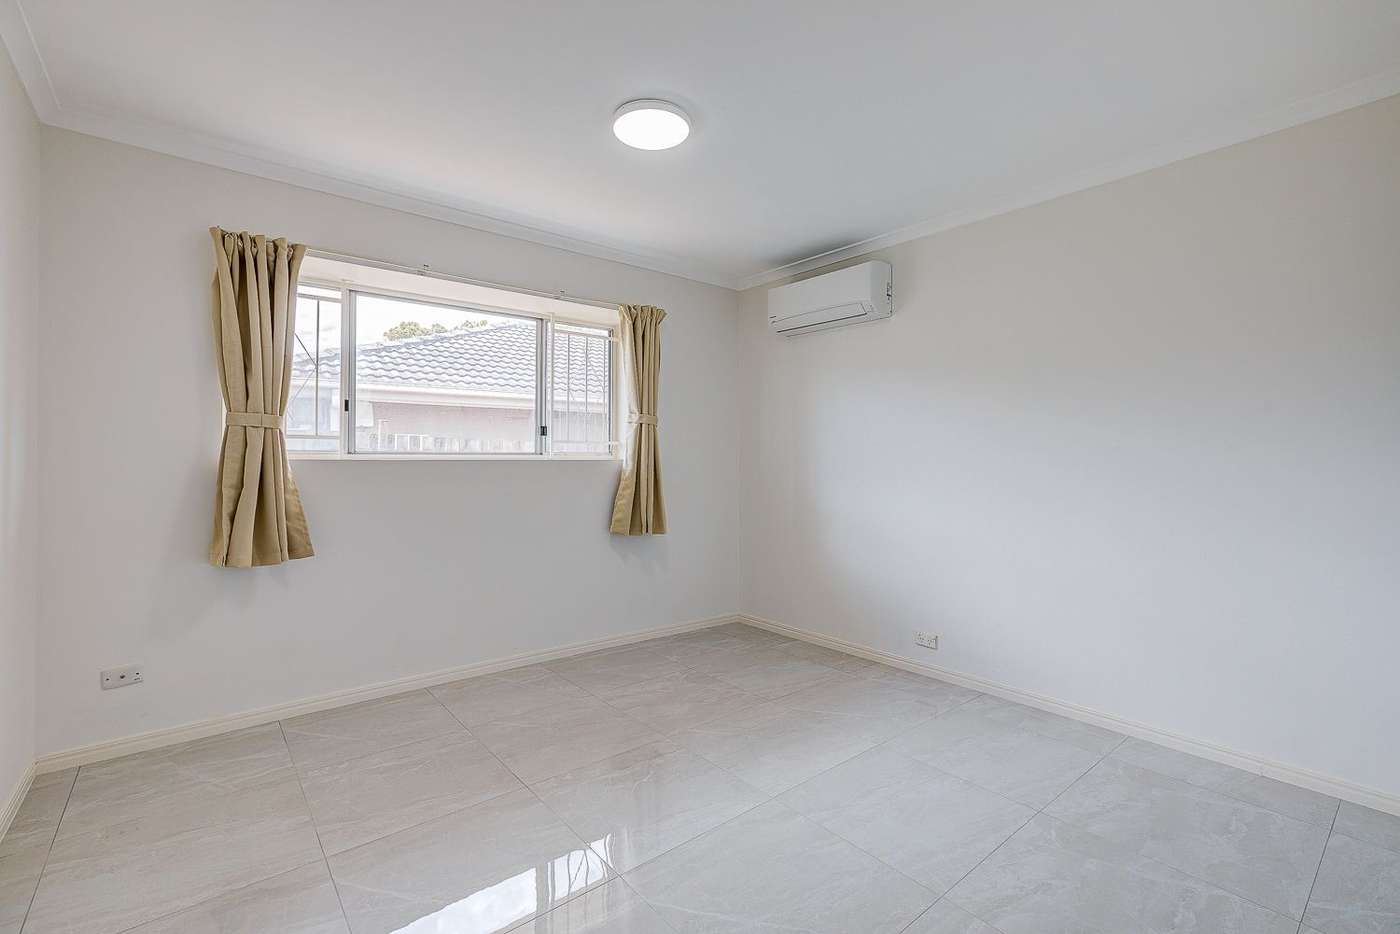 Sixth view of Homely house listing, 8 Lamorna Street, Rochedale South QLD 4123